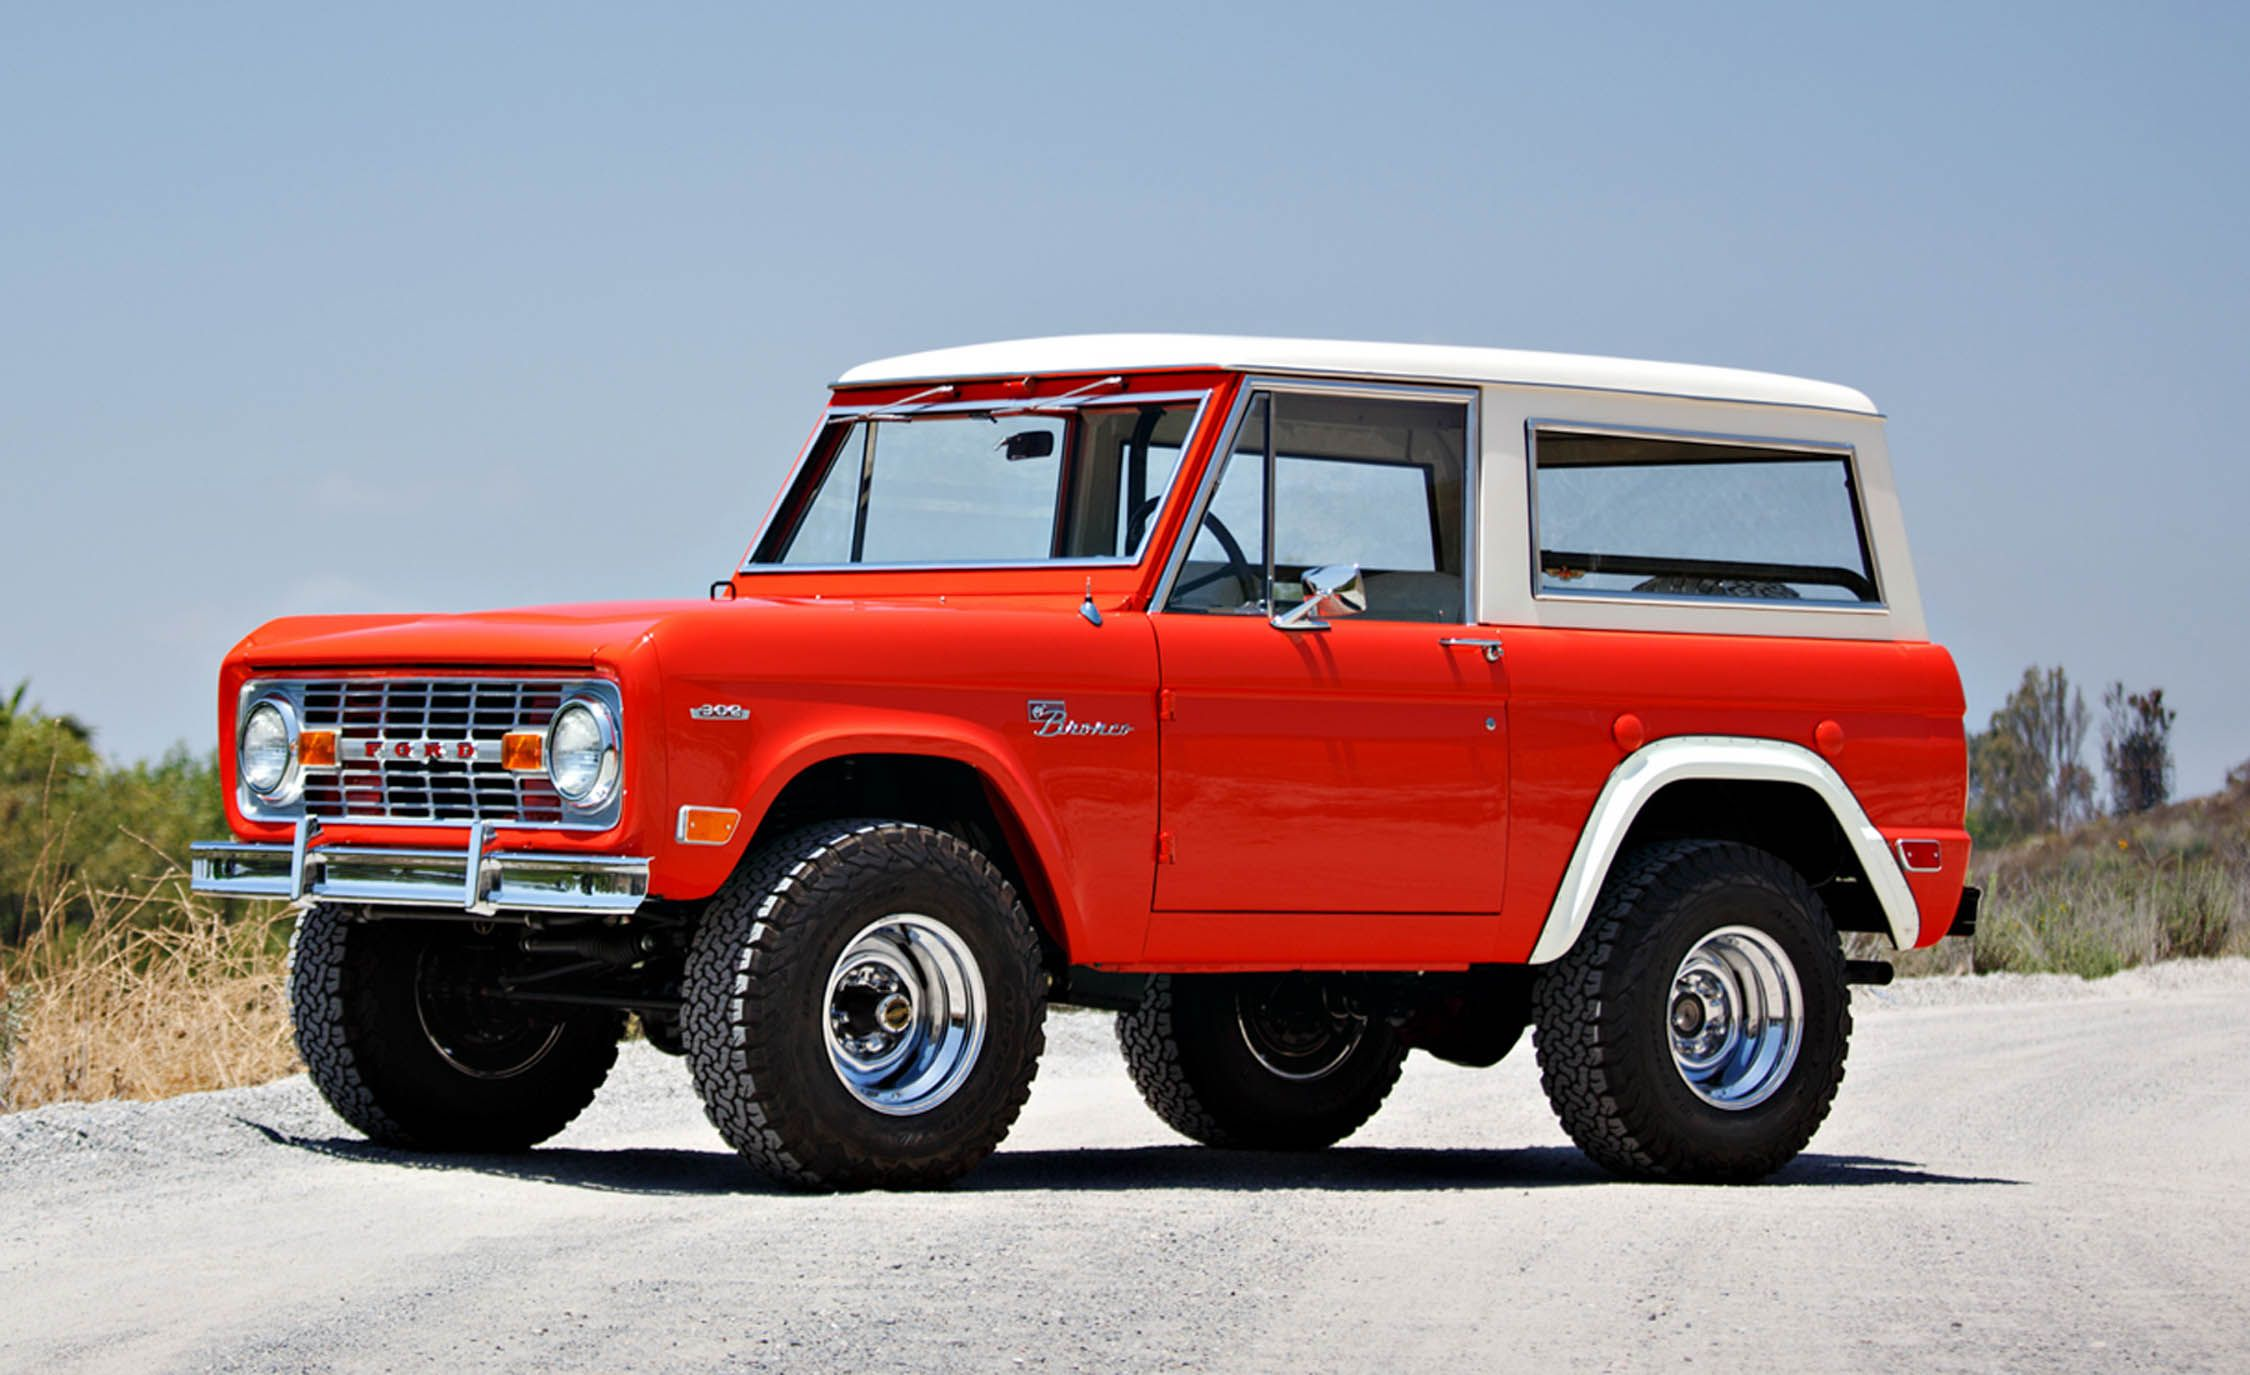 Epic  Ford Bronco Test Vehicle To Cross The Auction Block